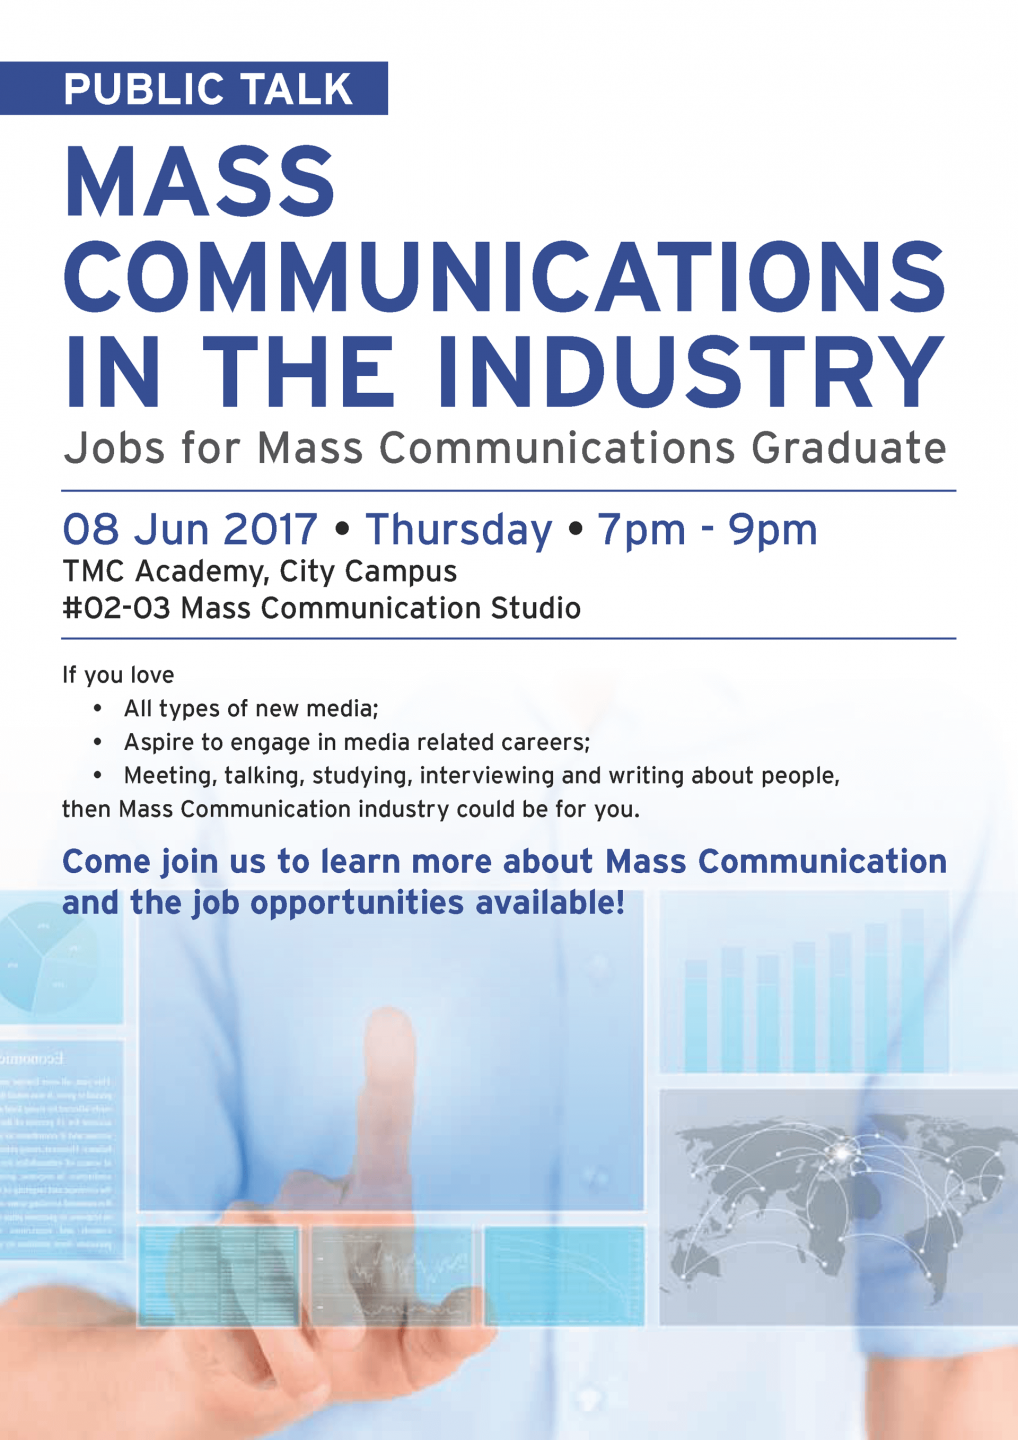 Mass Communications in the Industry Workshop - TMC Academy